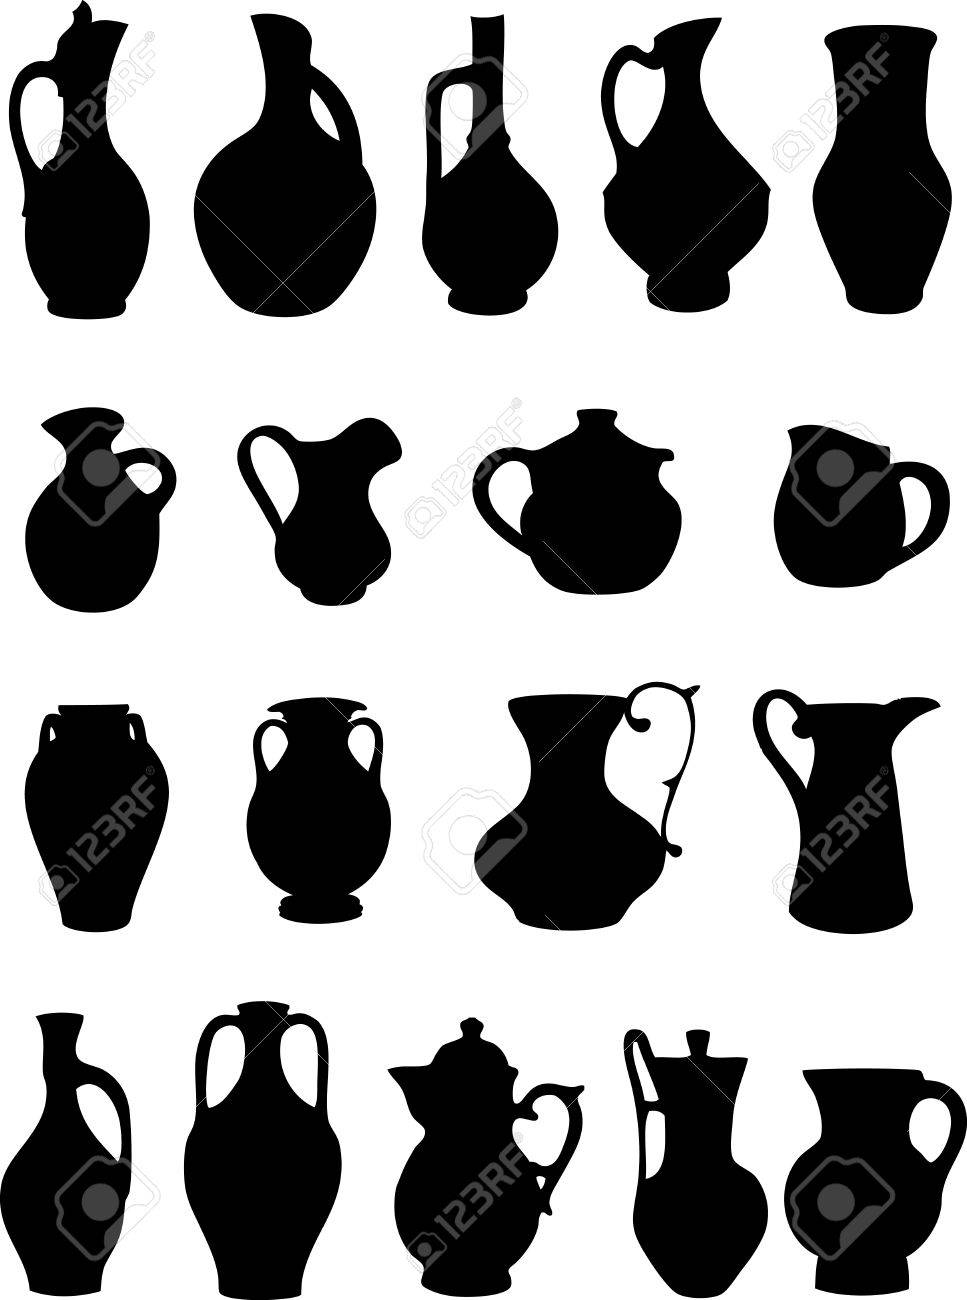 the illustration shows a group of ancient and modern pitchers